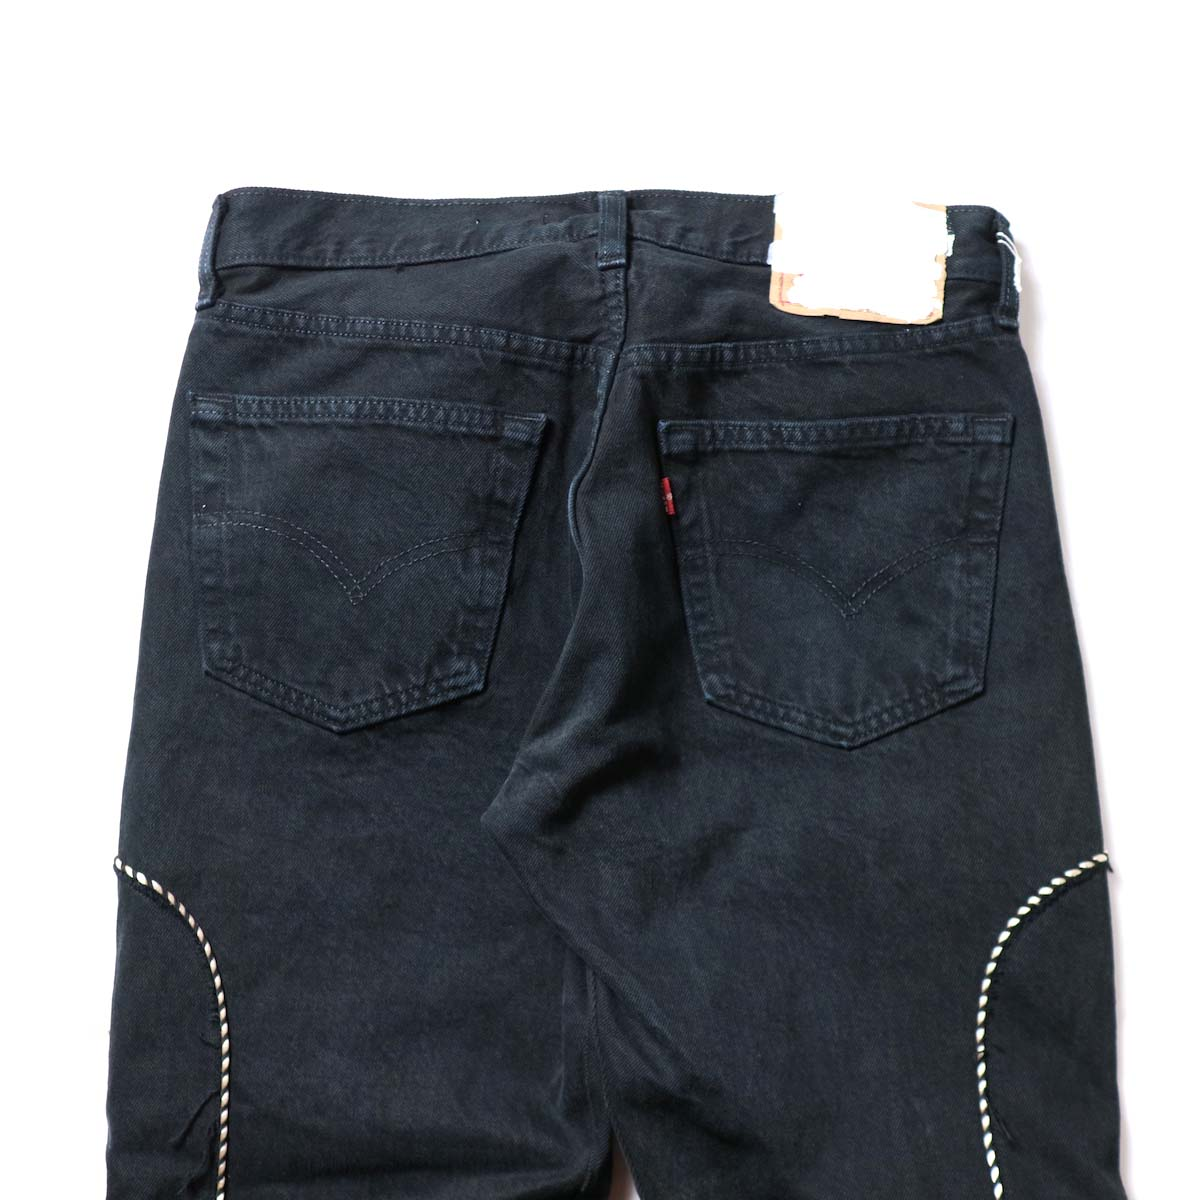 OLD PARK / Western Jeans Black (Msize-F)ヒップポケット